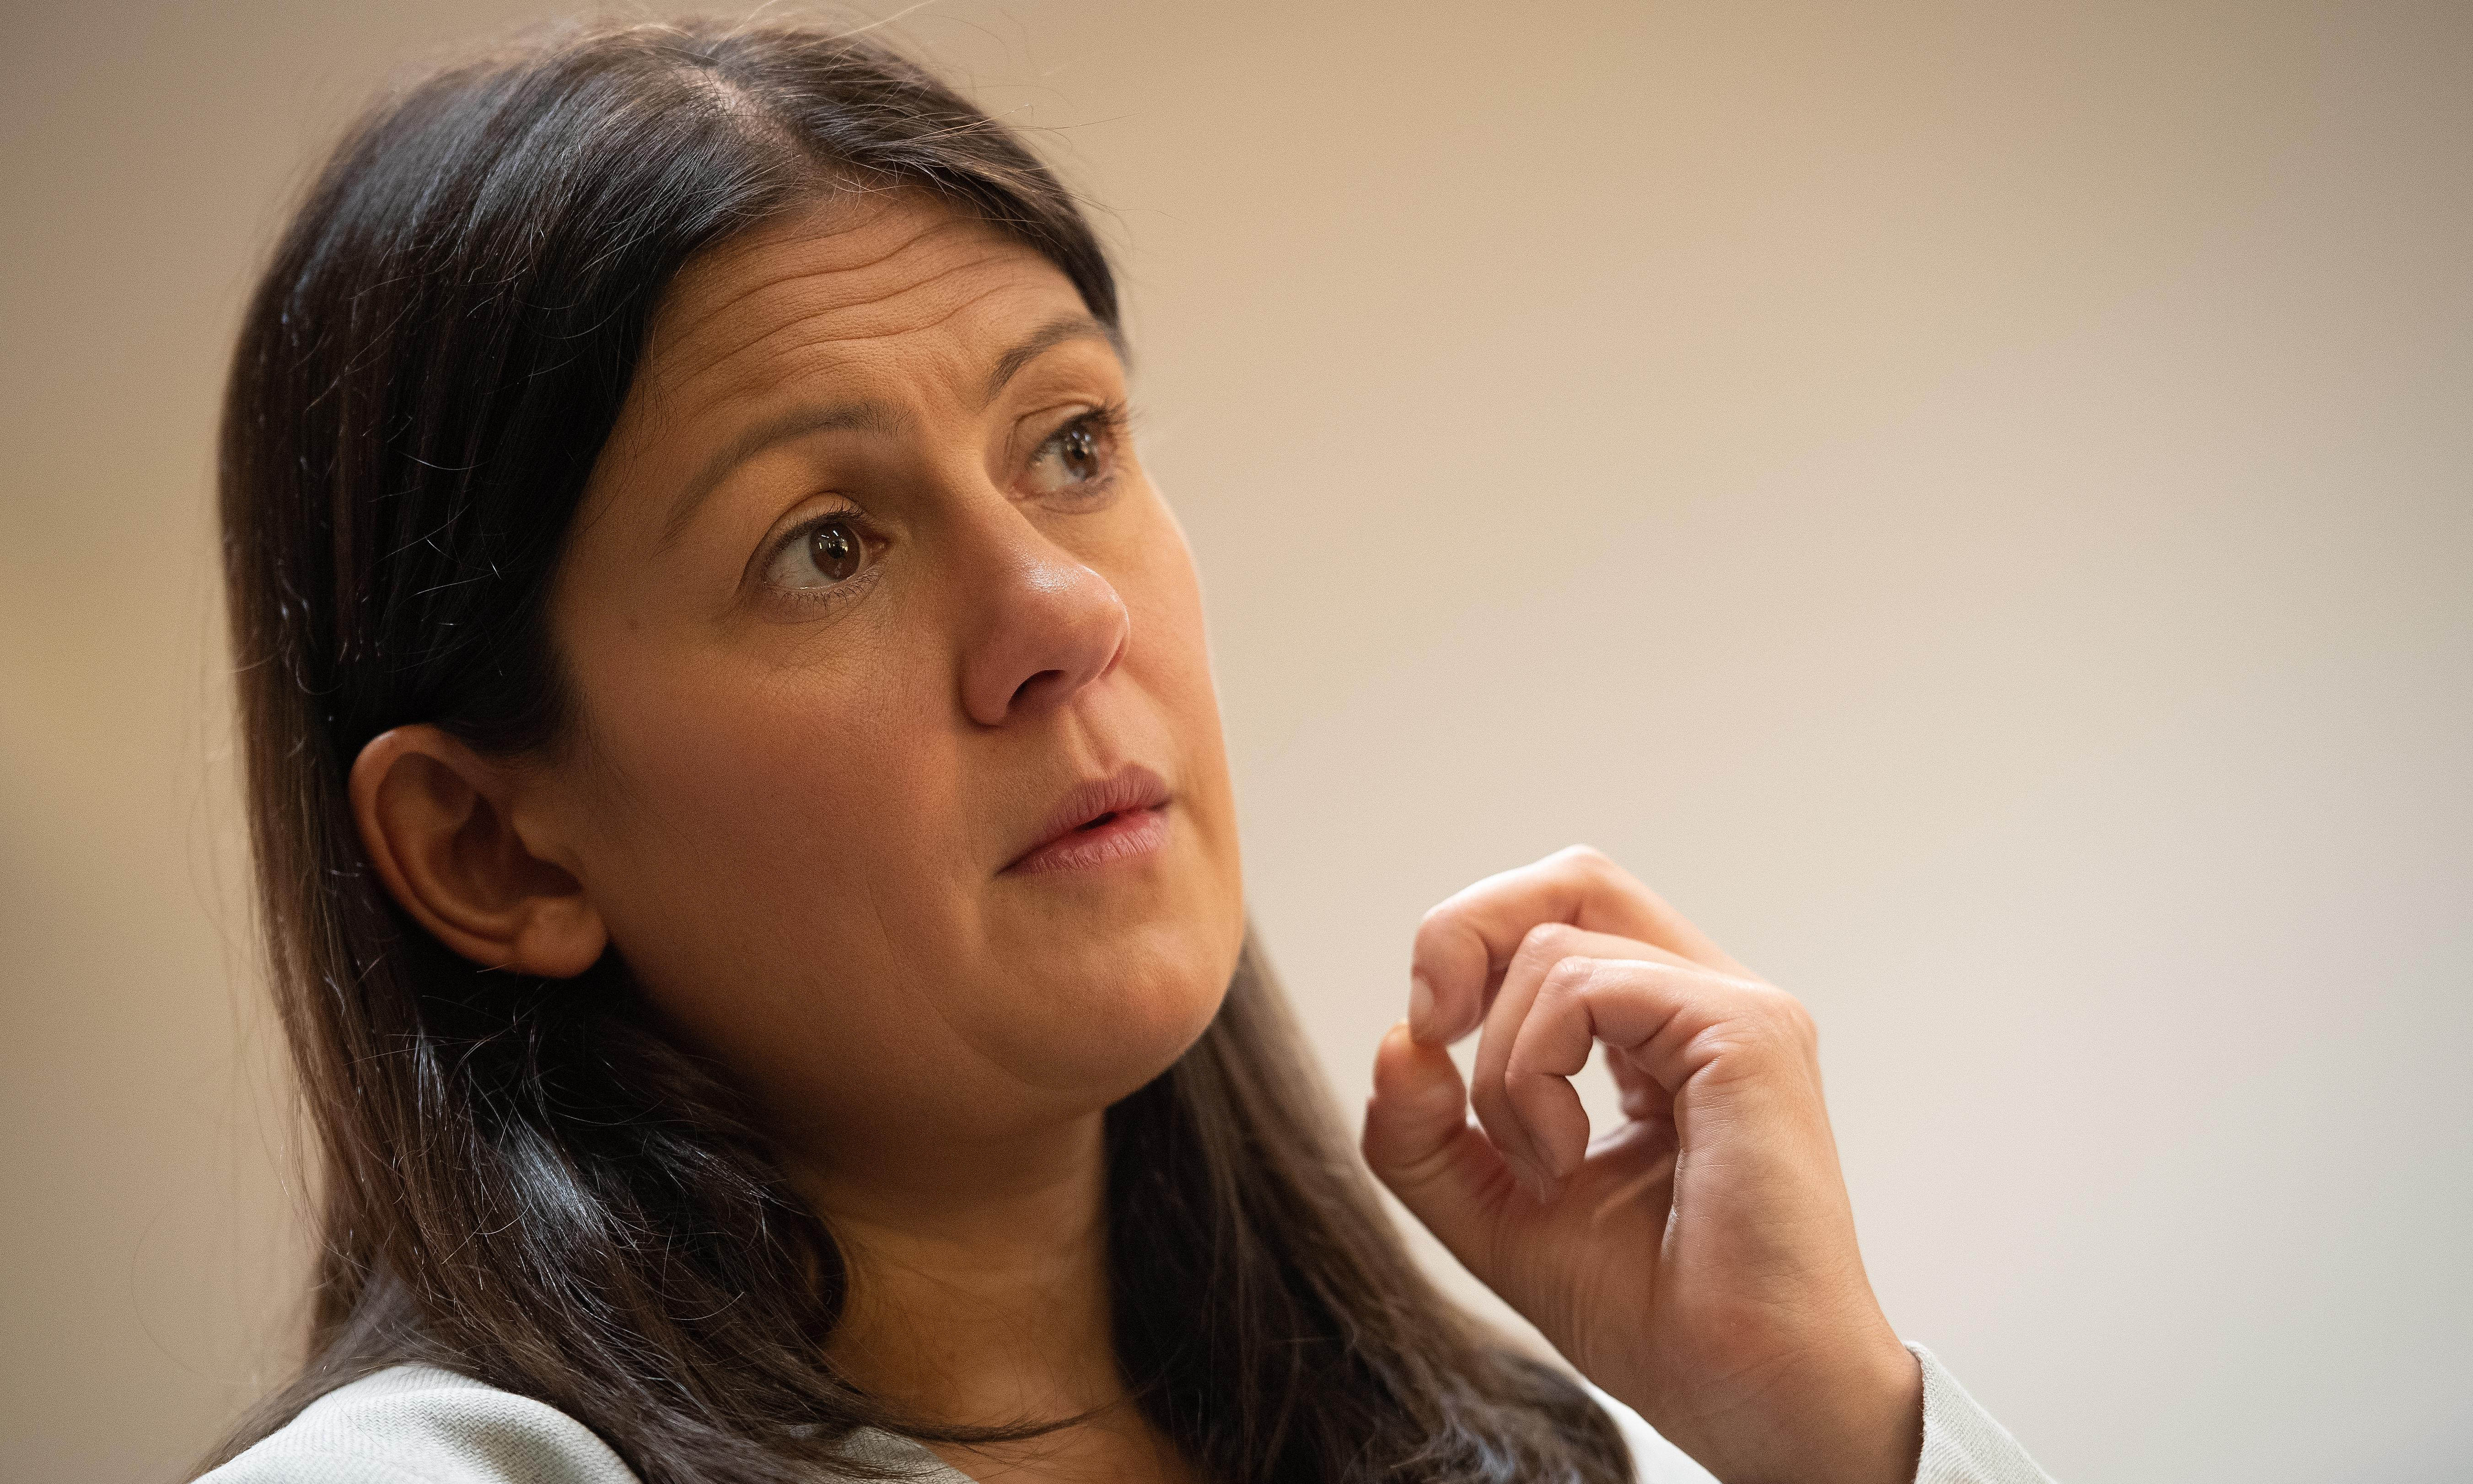 A Labour leader who can represent working-class interests